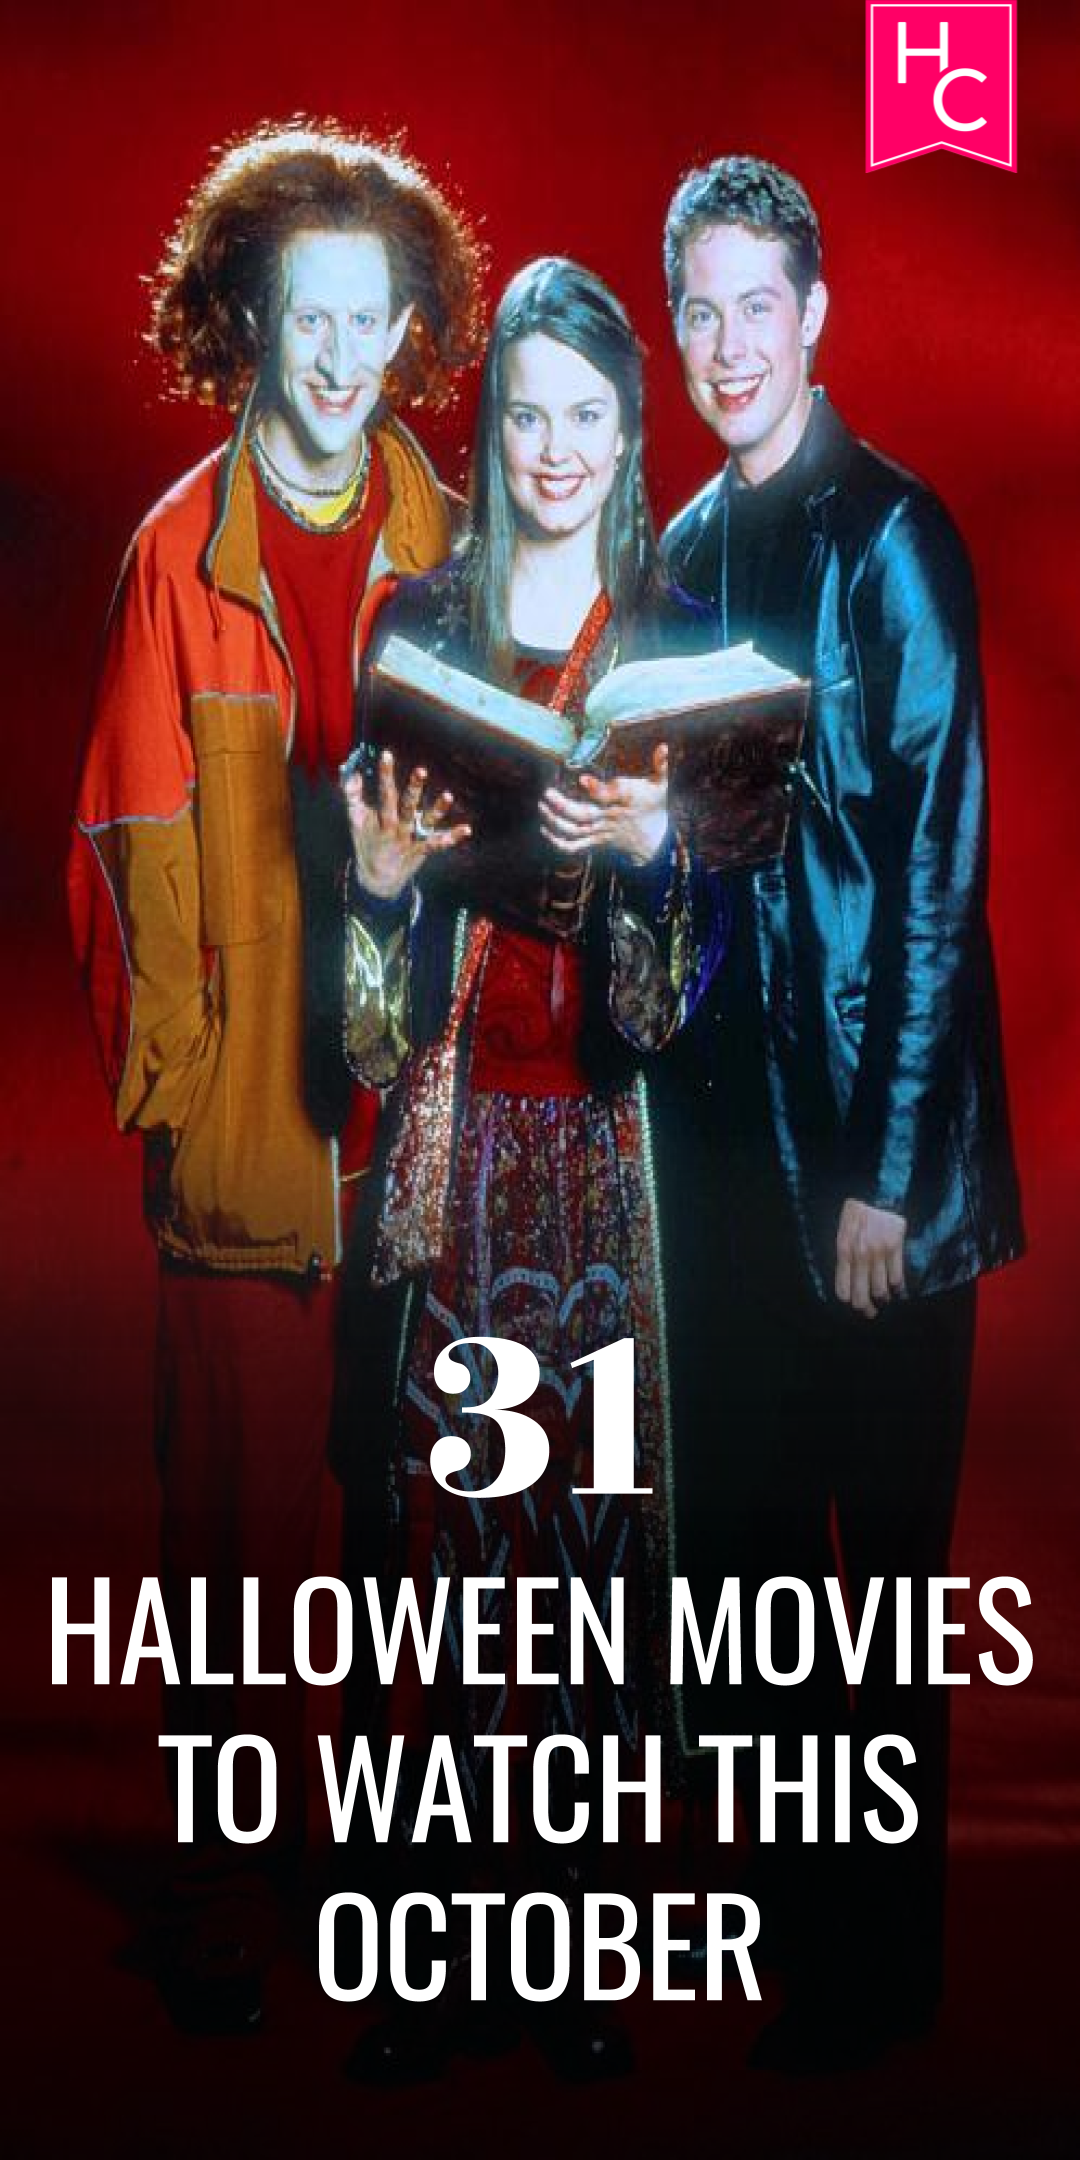 Halloween Movie Guide 31 Spooky Flicks to Watch This